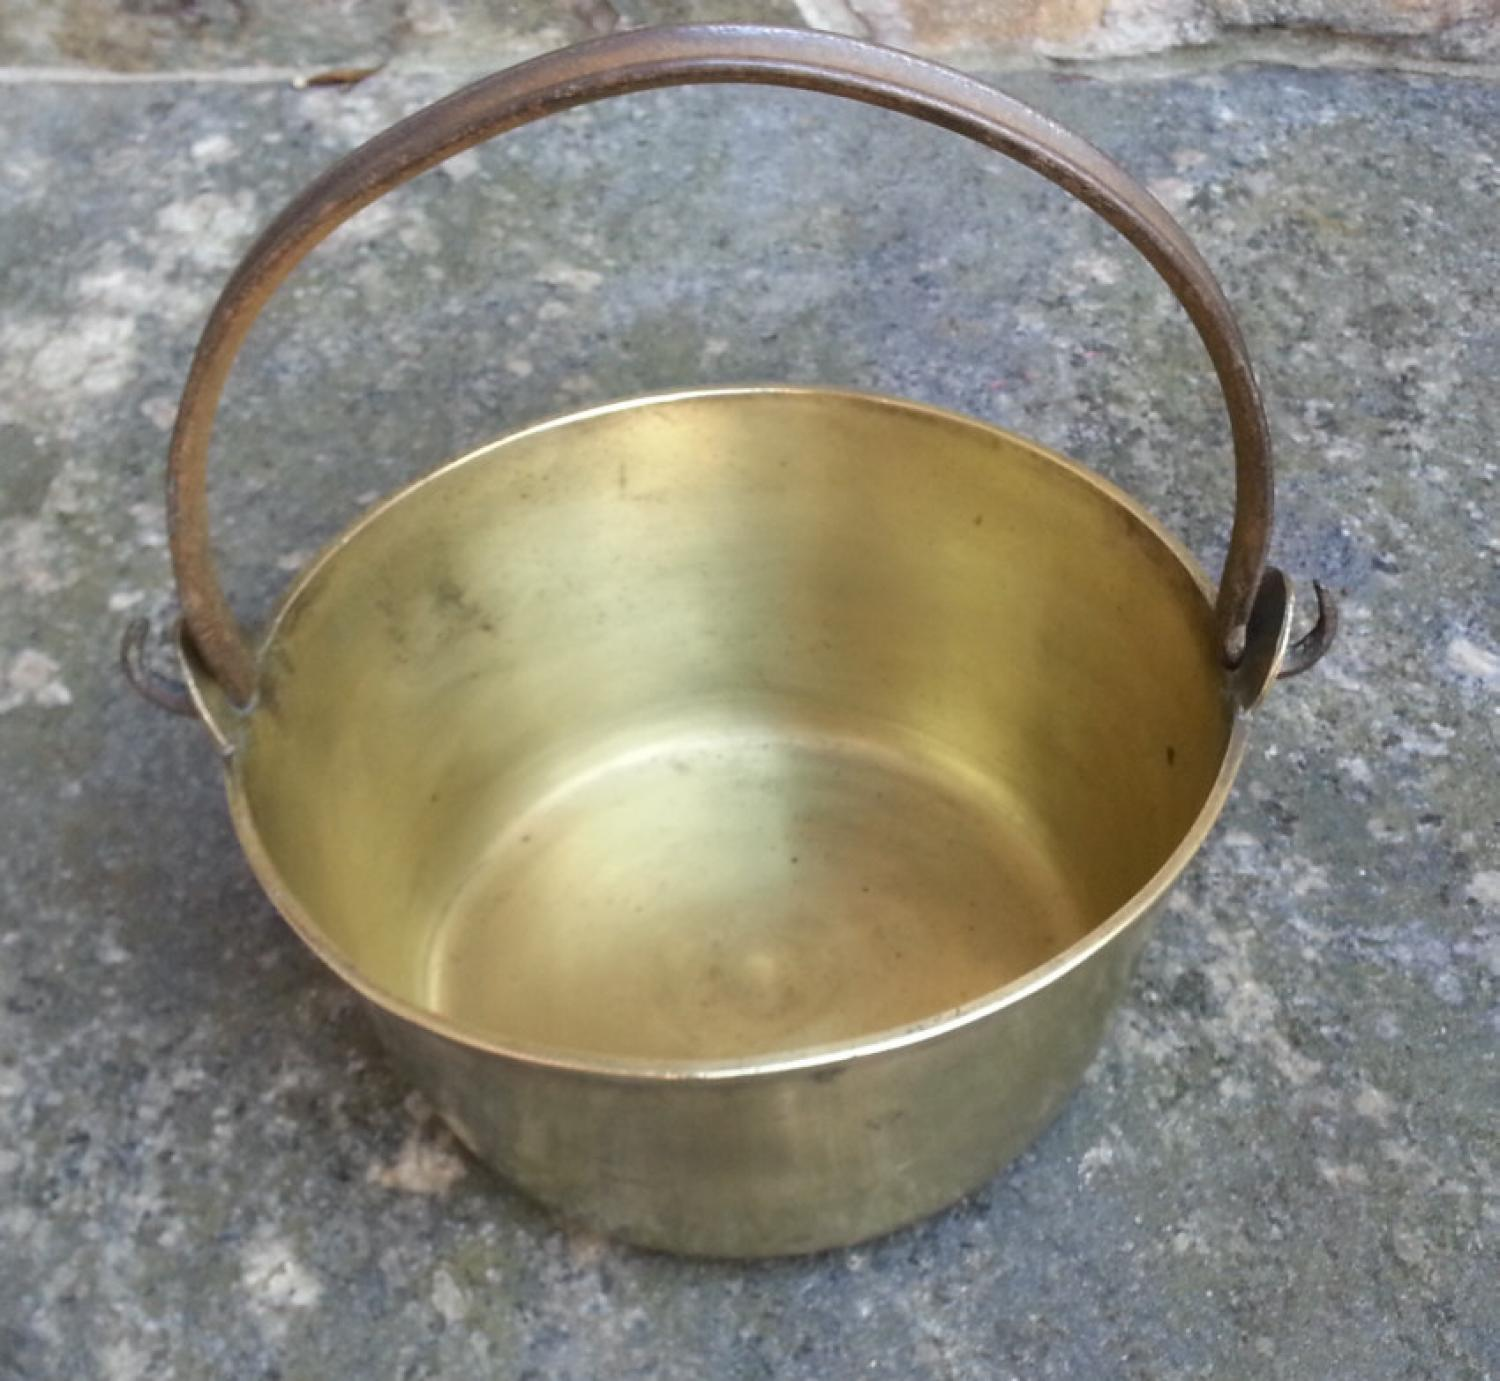 Early American solid brass swing handle cooking pail c1800